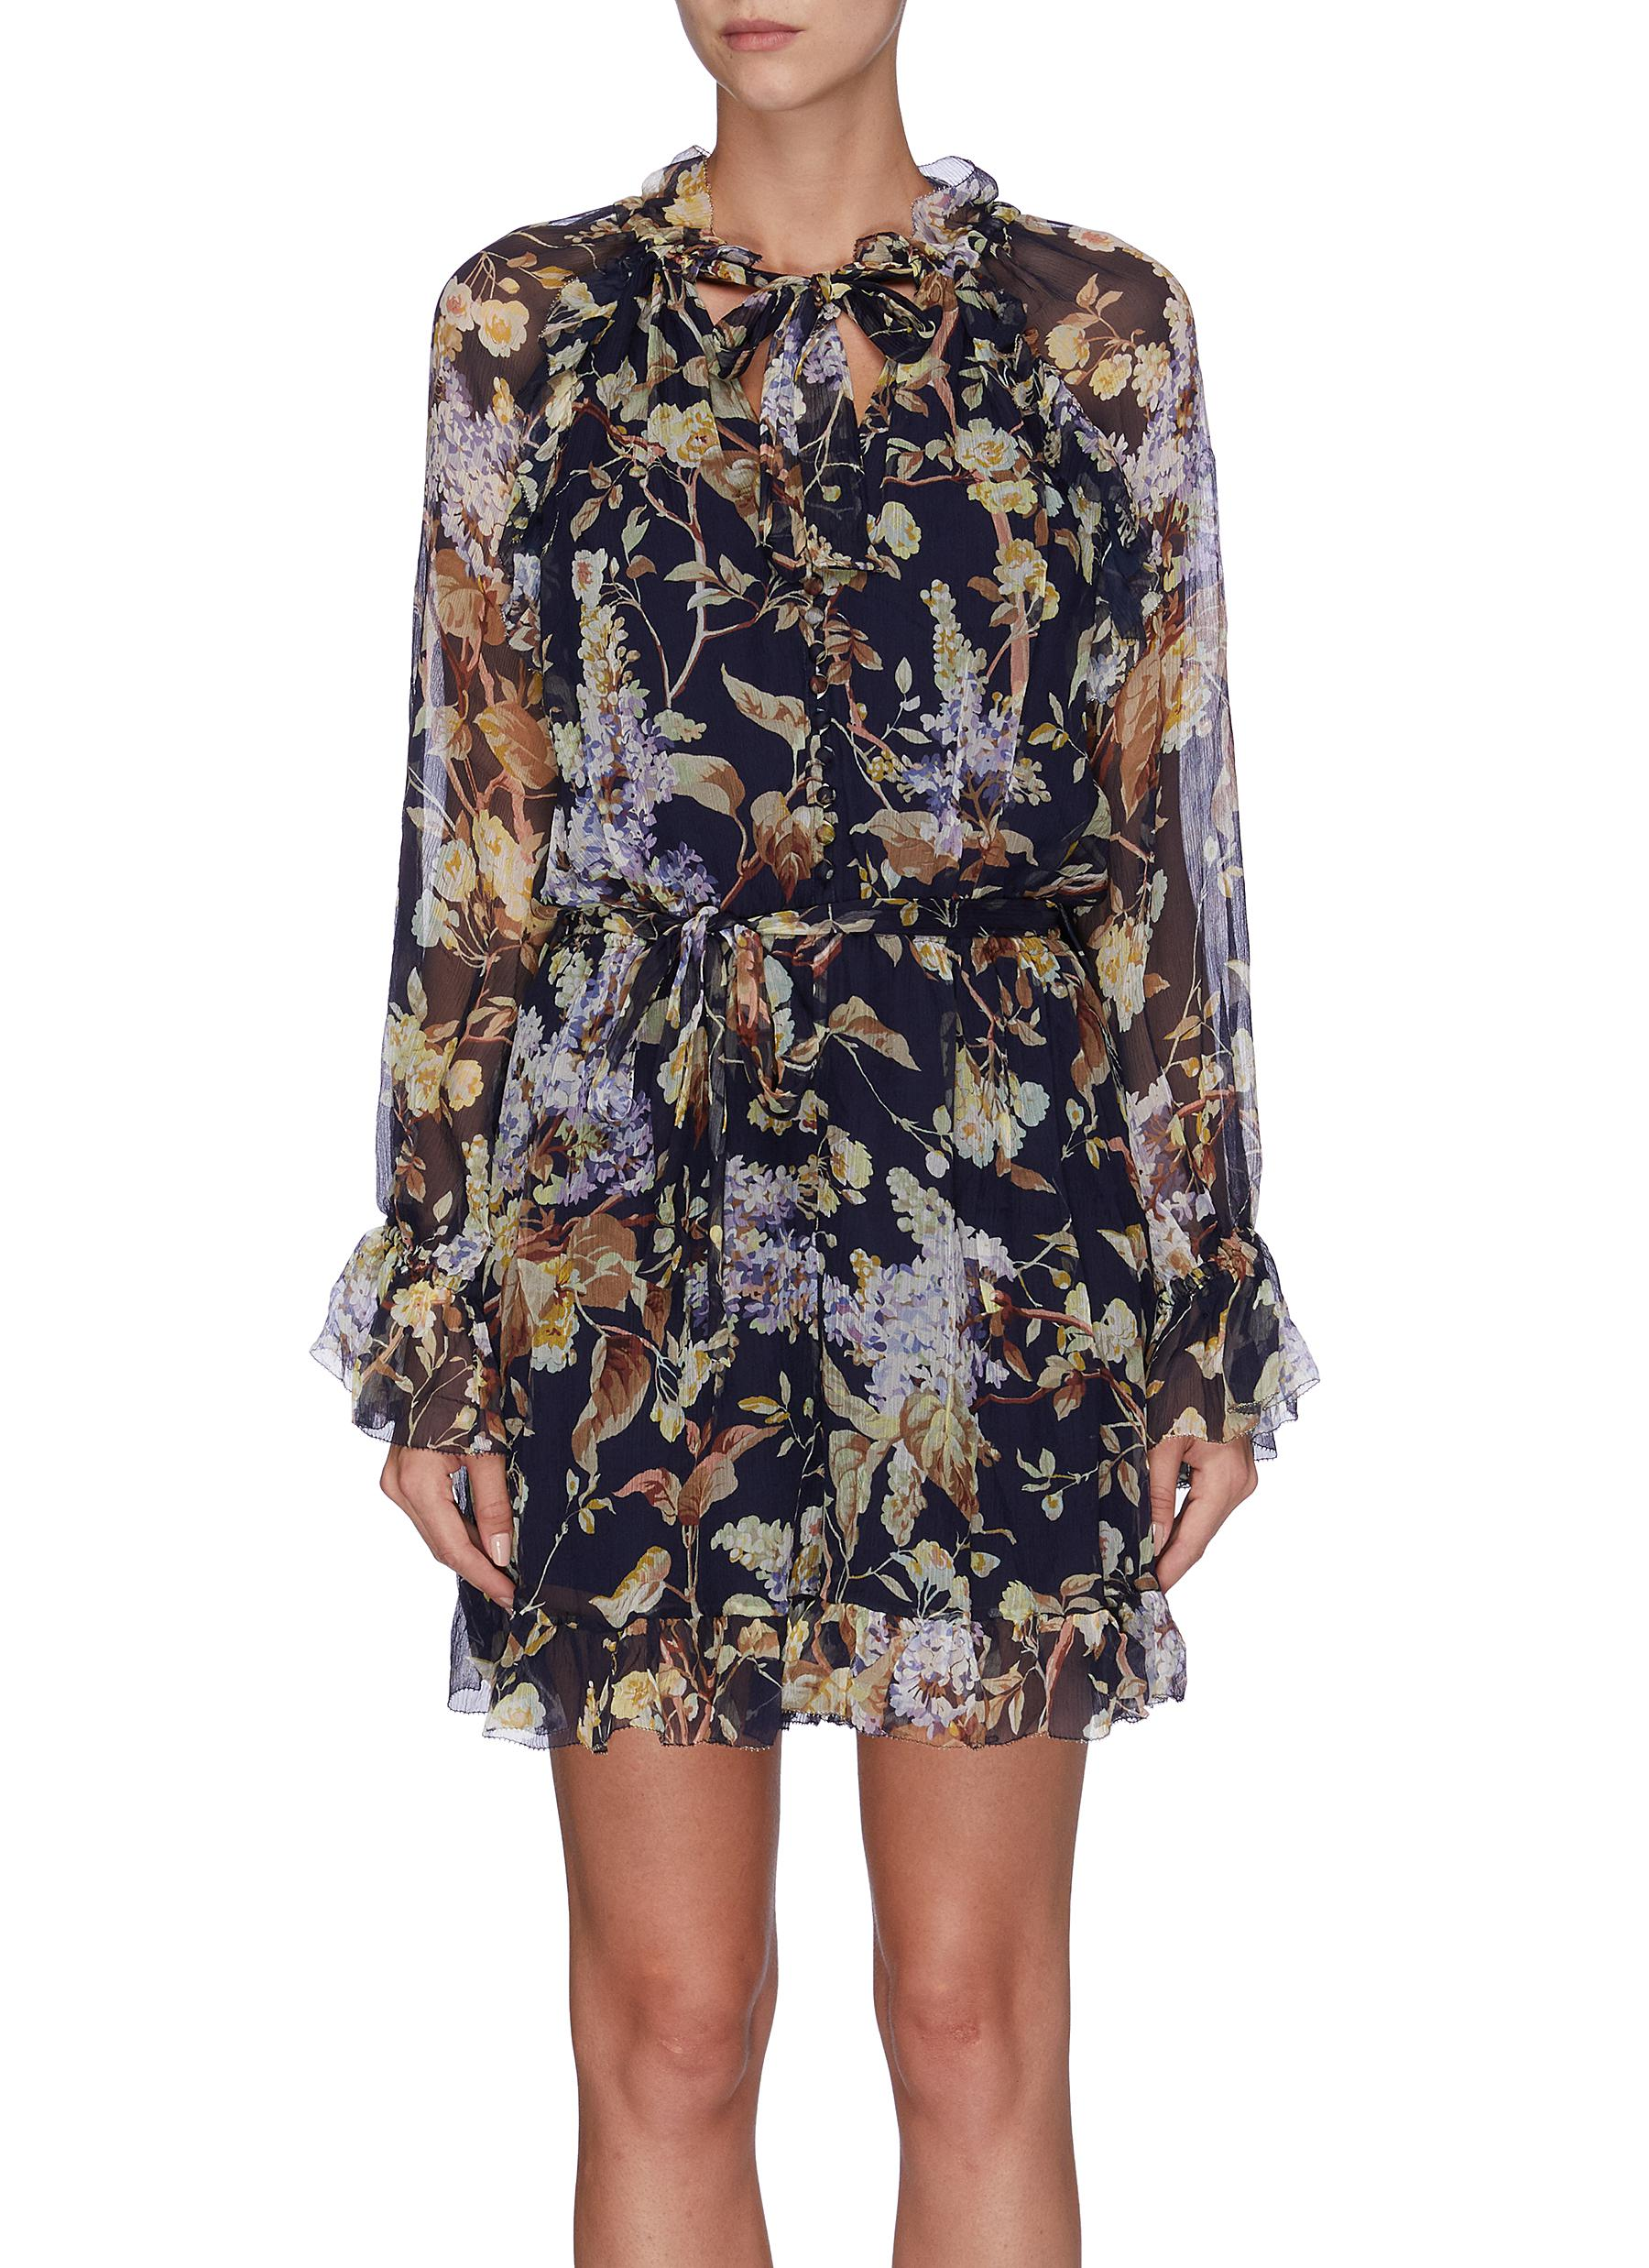 Sabotage belted floral print ruffled playsuit by Zimmermann